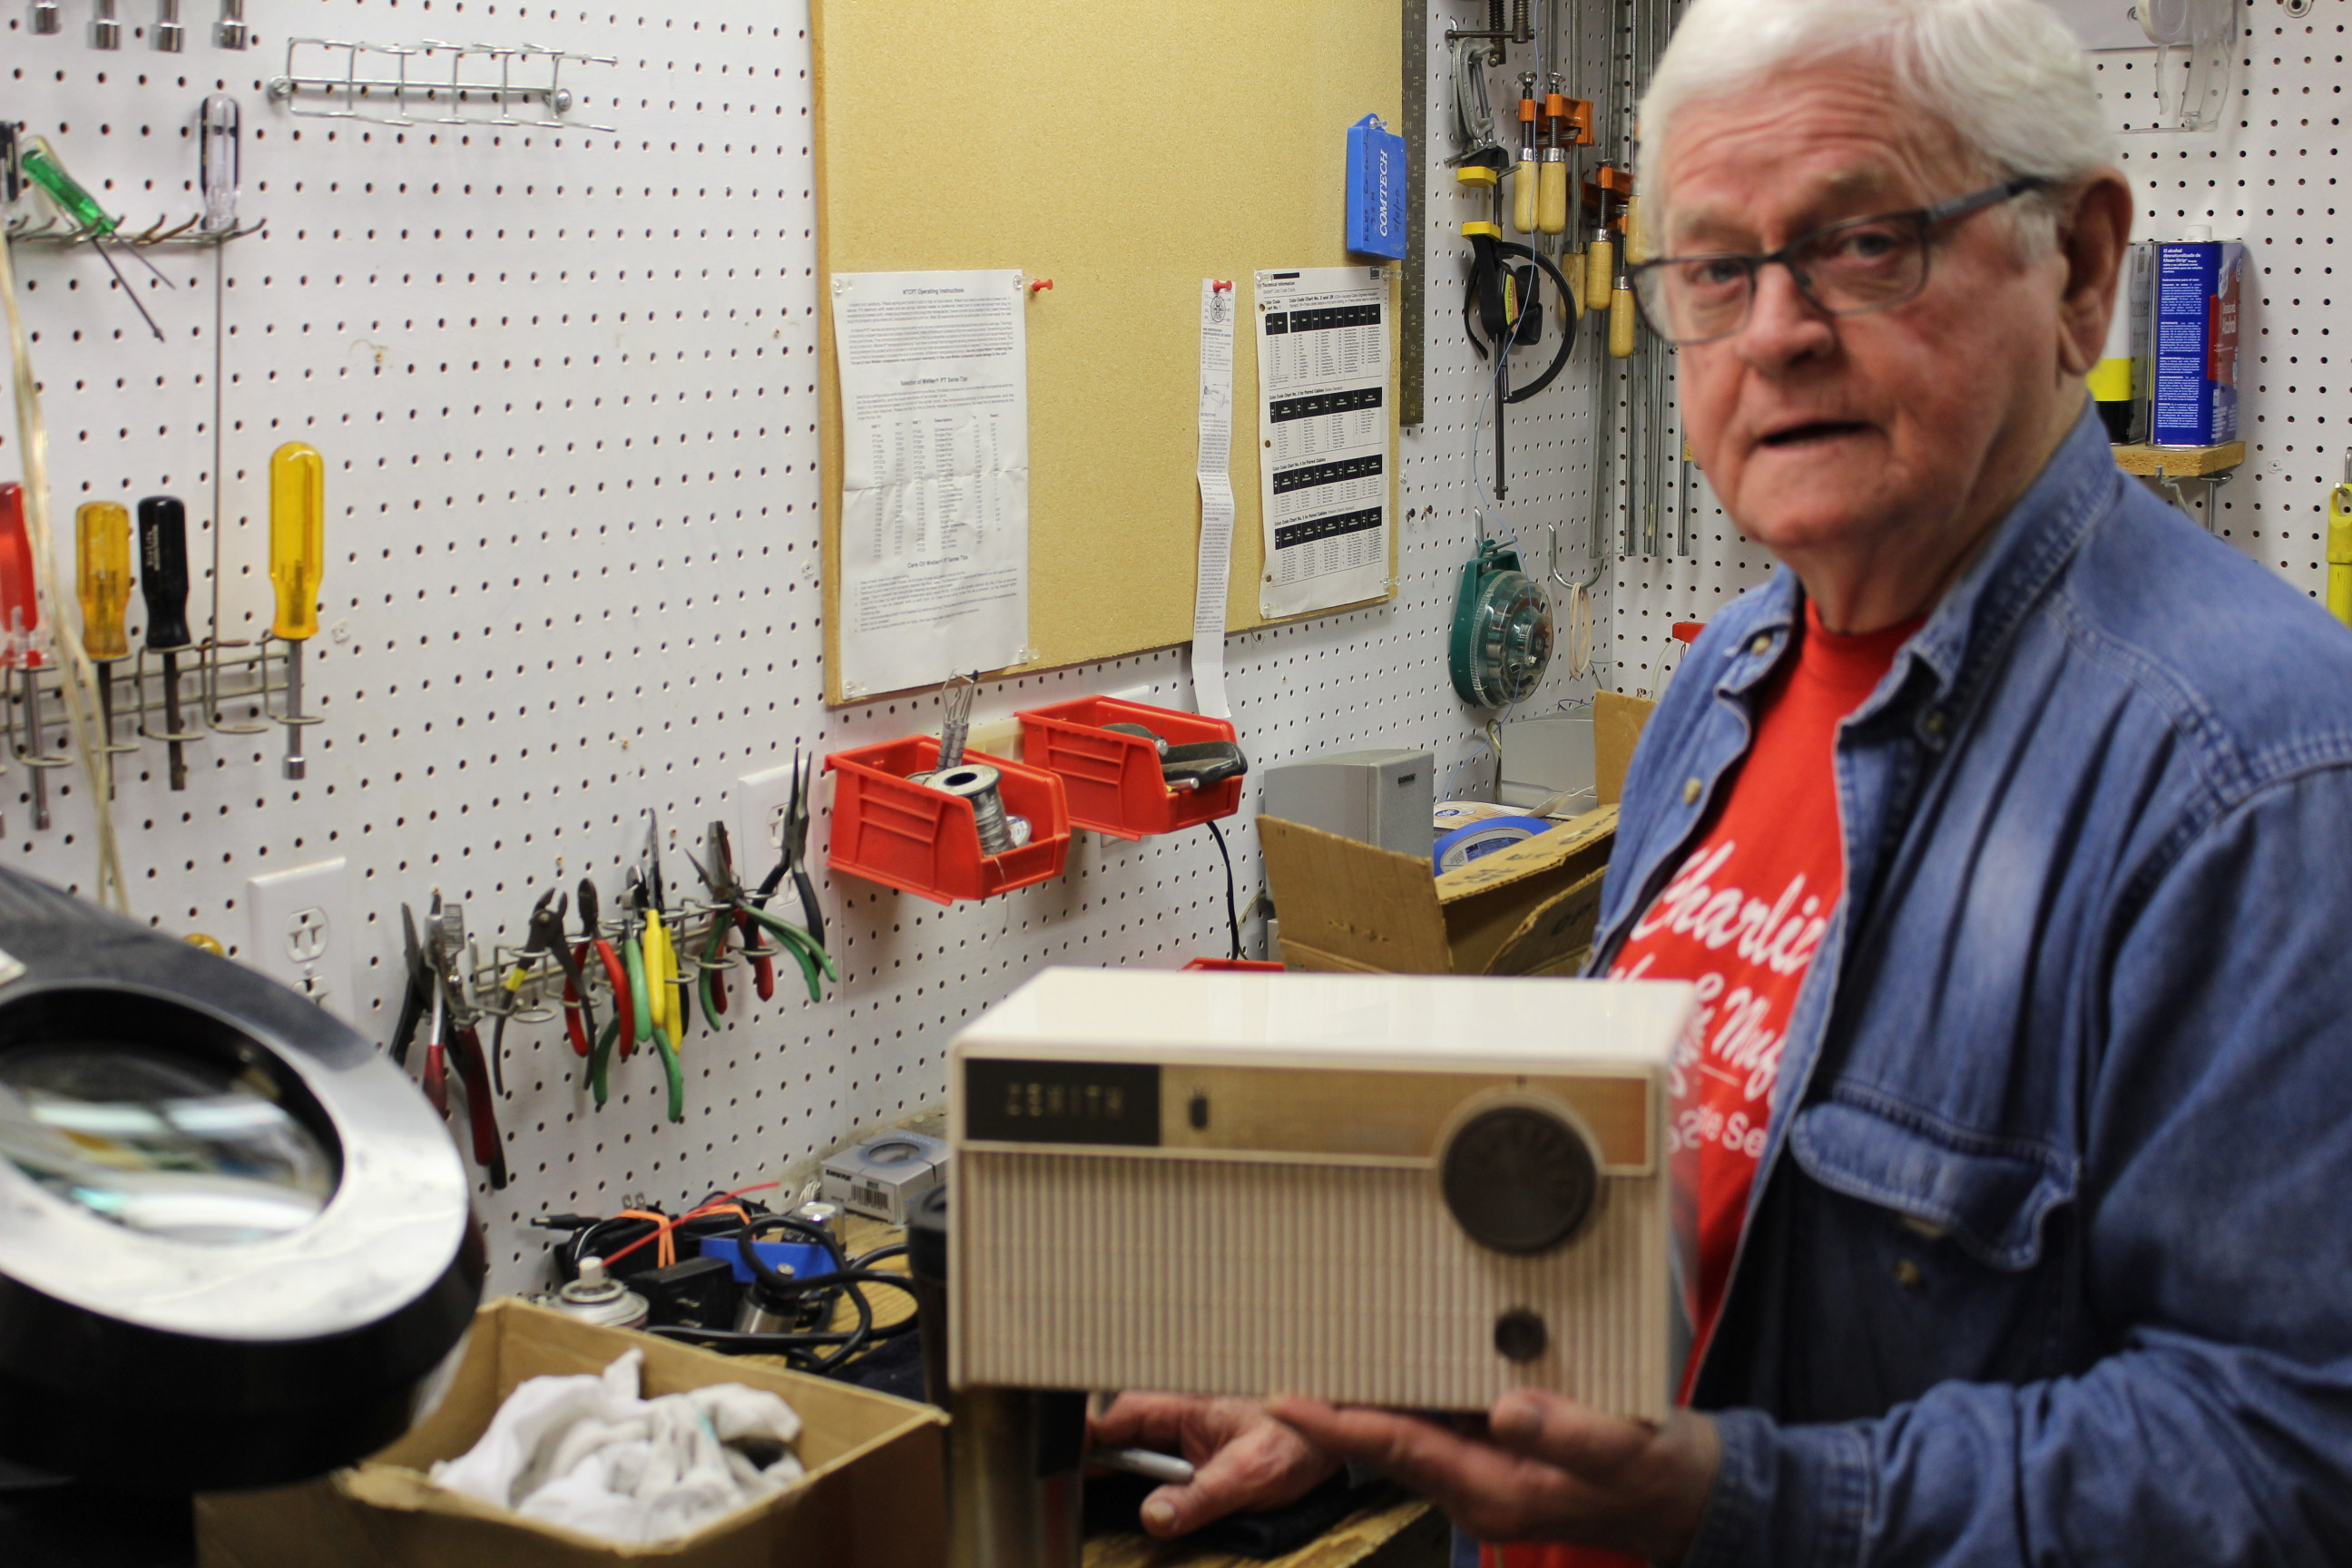 Lenexa resident Johnny Davis is another volunteer who helps restore audio equipment for Audio-Reader. In this photo, Davis works on an old Zenith table top radio. (Photo by J. Schafer)